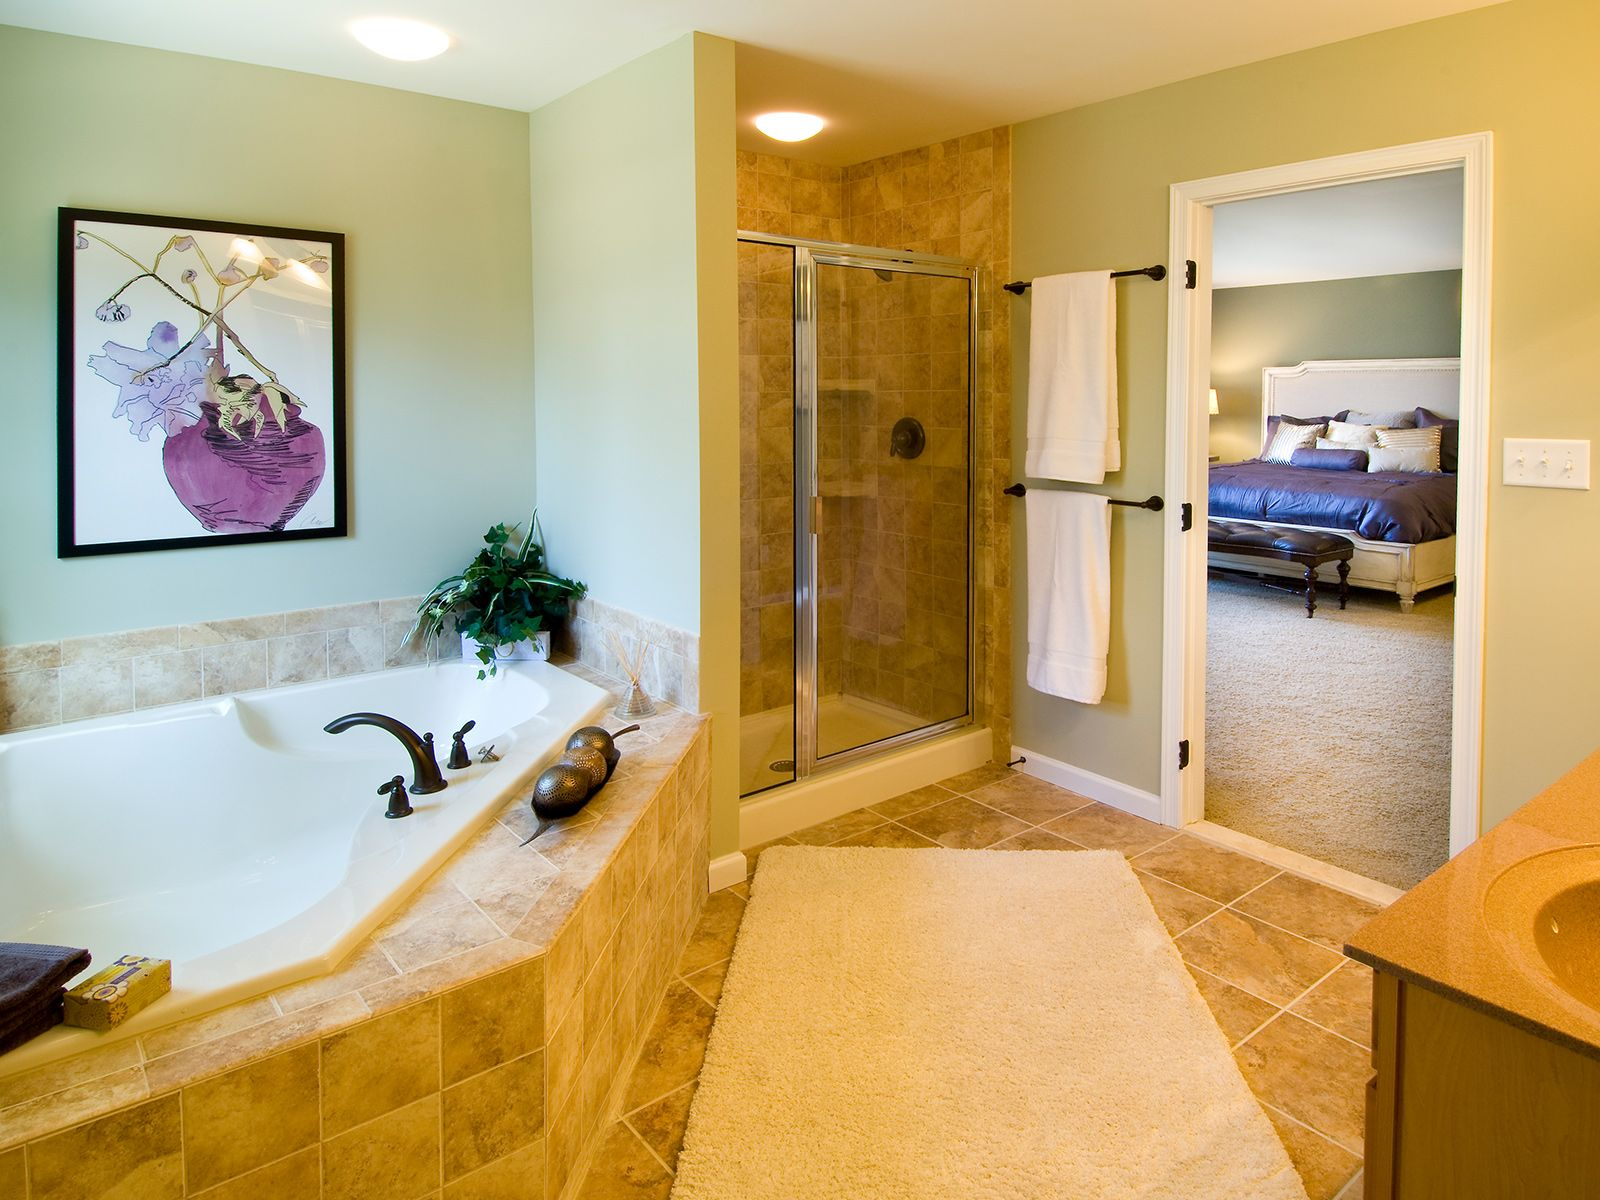 Bathroom featured in the Ethan Manor By Keystone Custom Homes in York, PA